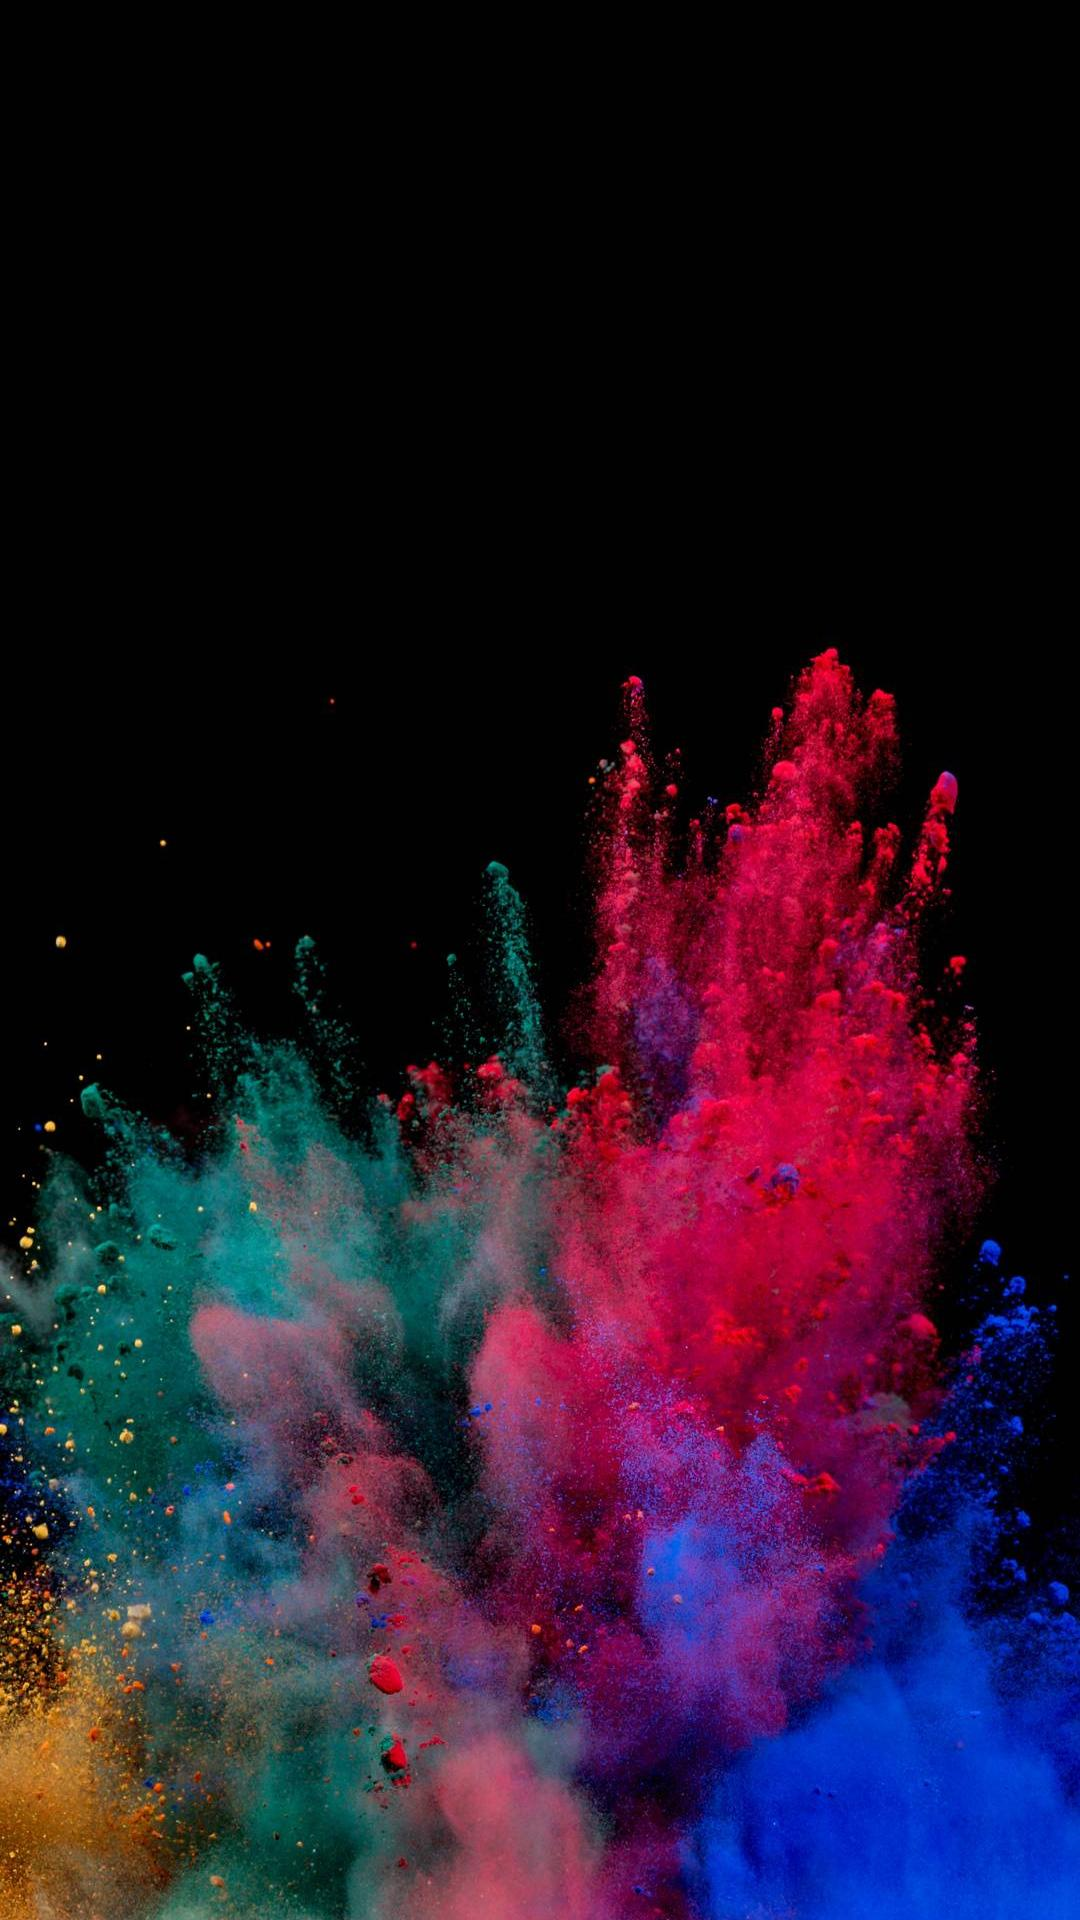 Amoled Background HD Wallpaper - 177